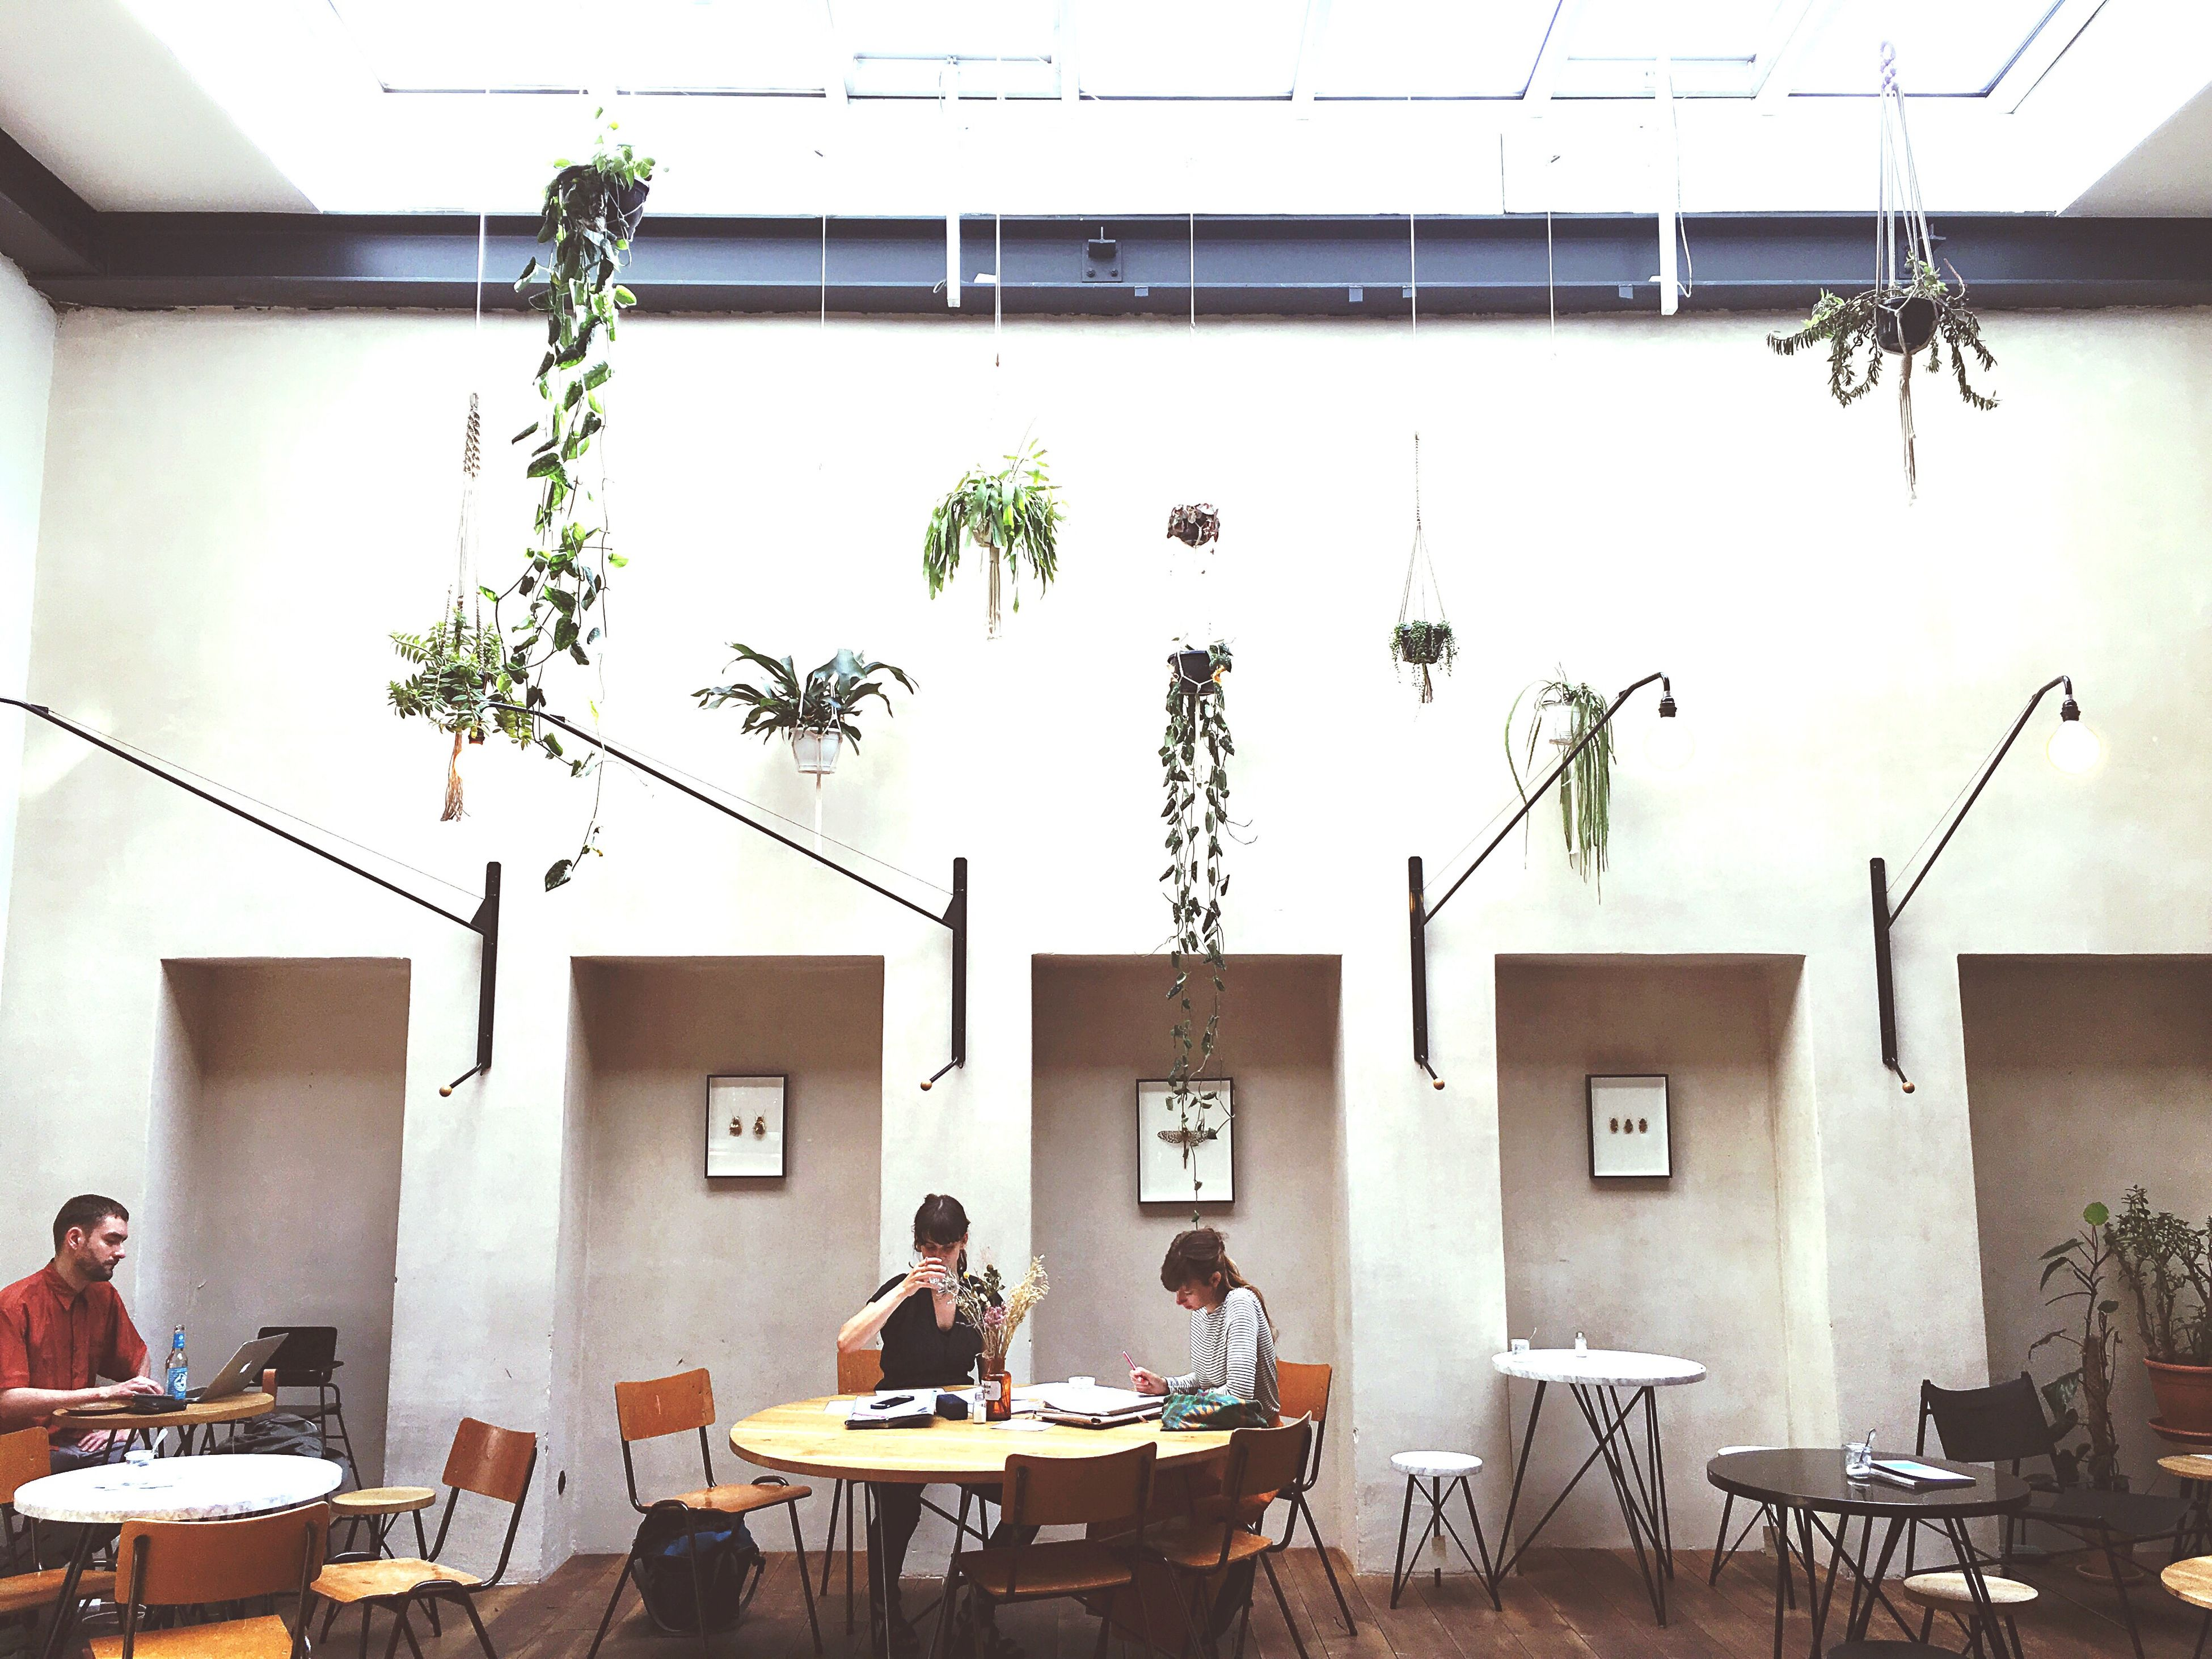 men, chair, table, architecture, indoors, lifestyles, built structure, person, sitting, leisure activity, building exterior, day, window, restaurant, relaxation, shadow, working, sunlight, high angle view